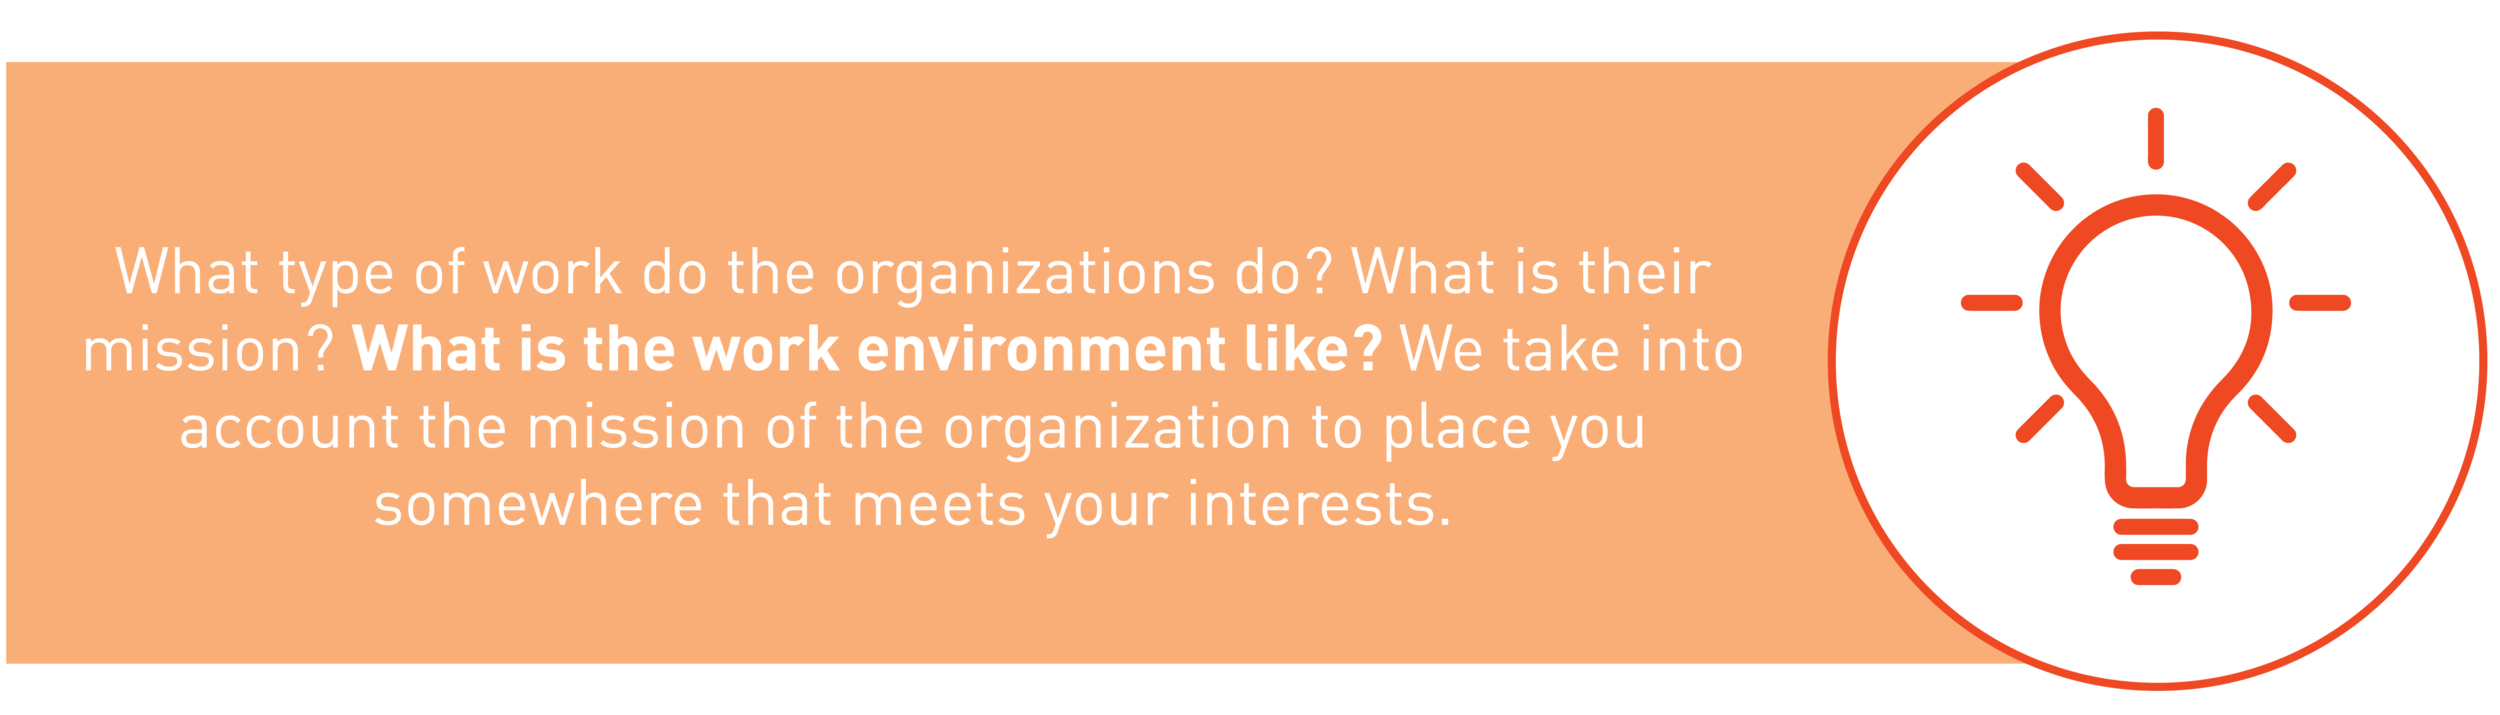 matching graphic about the organization and work that they do